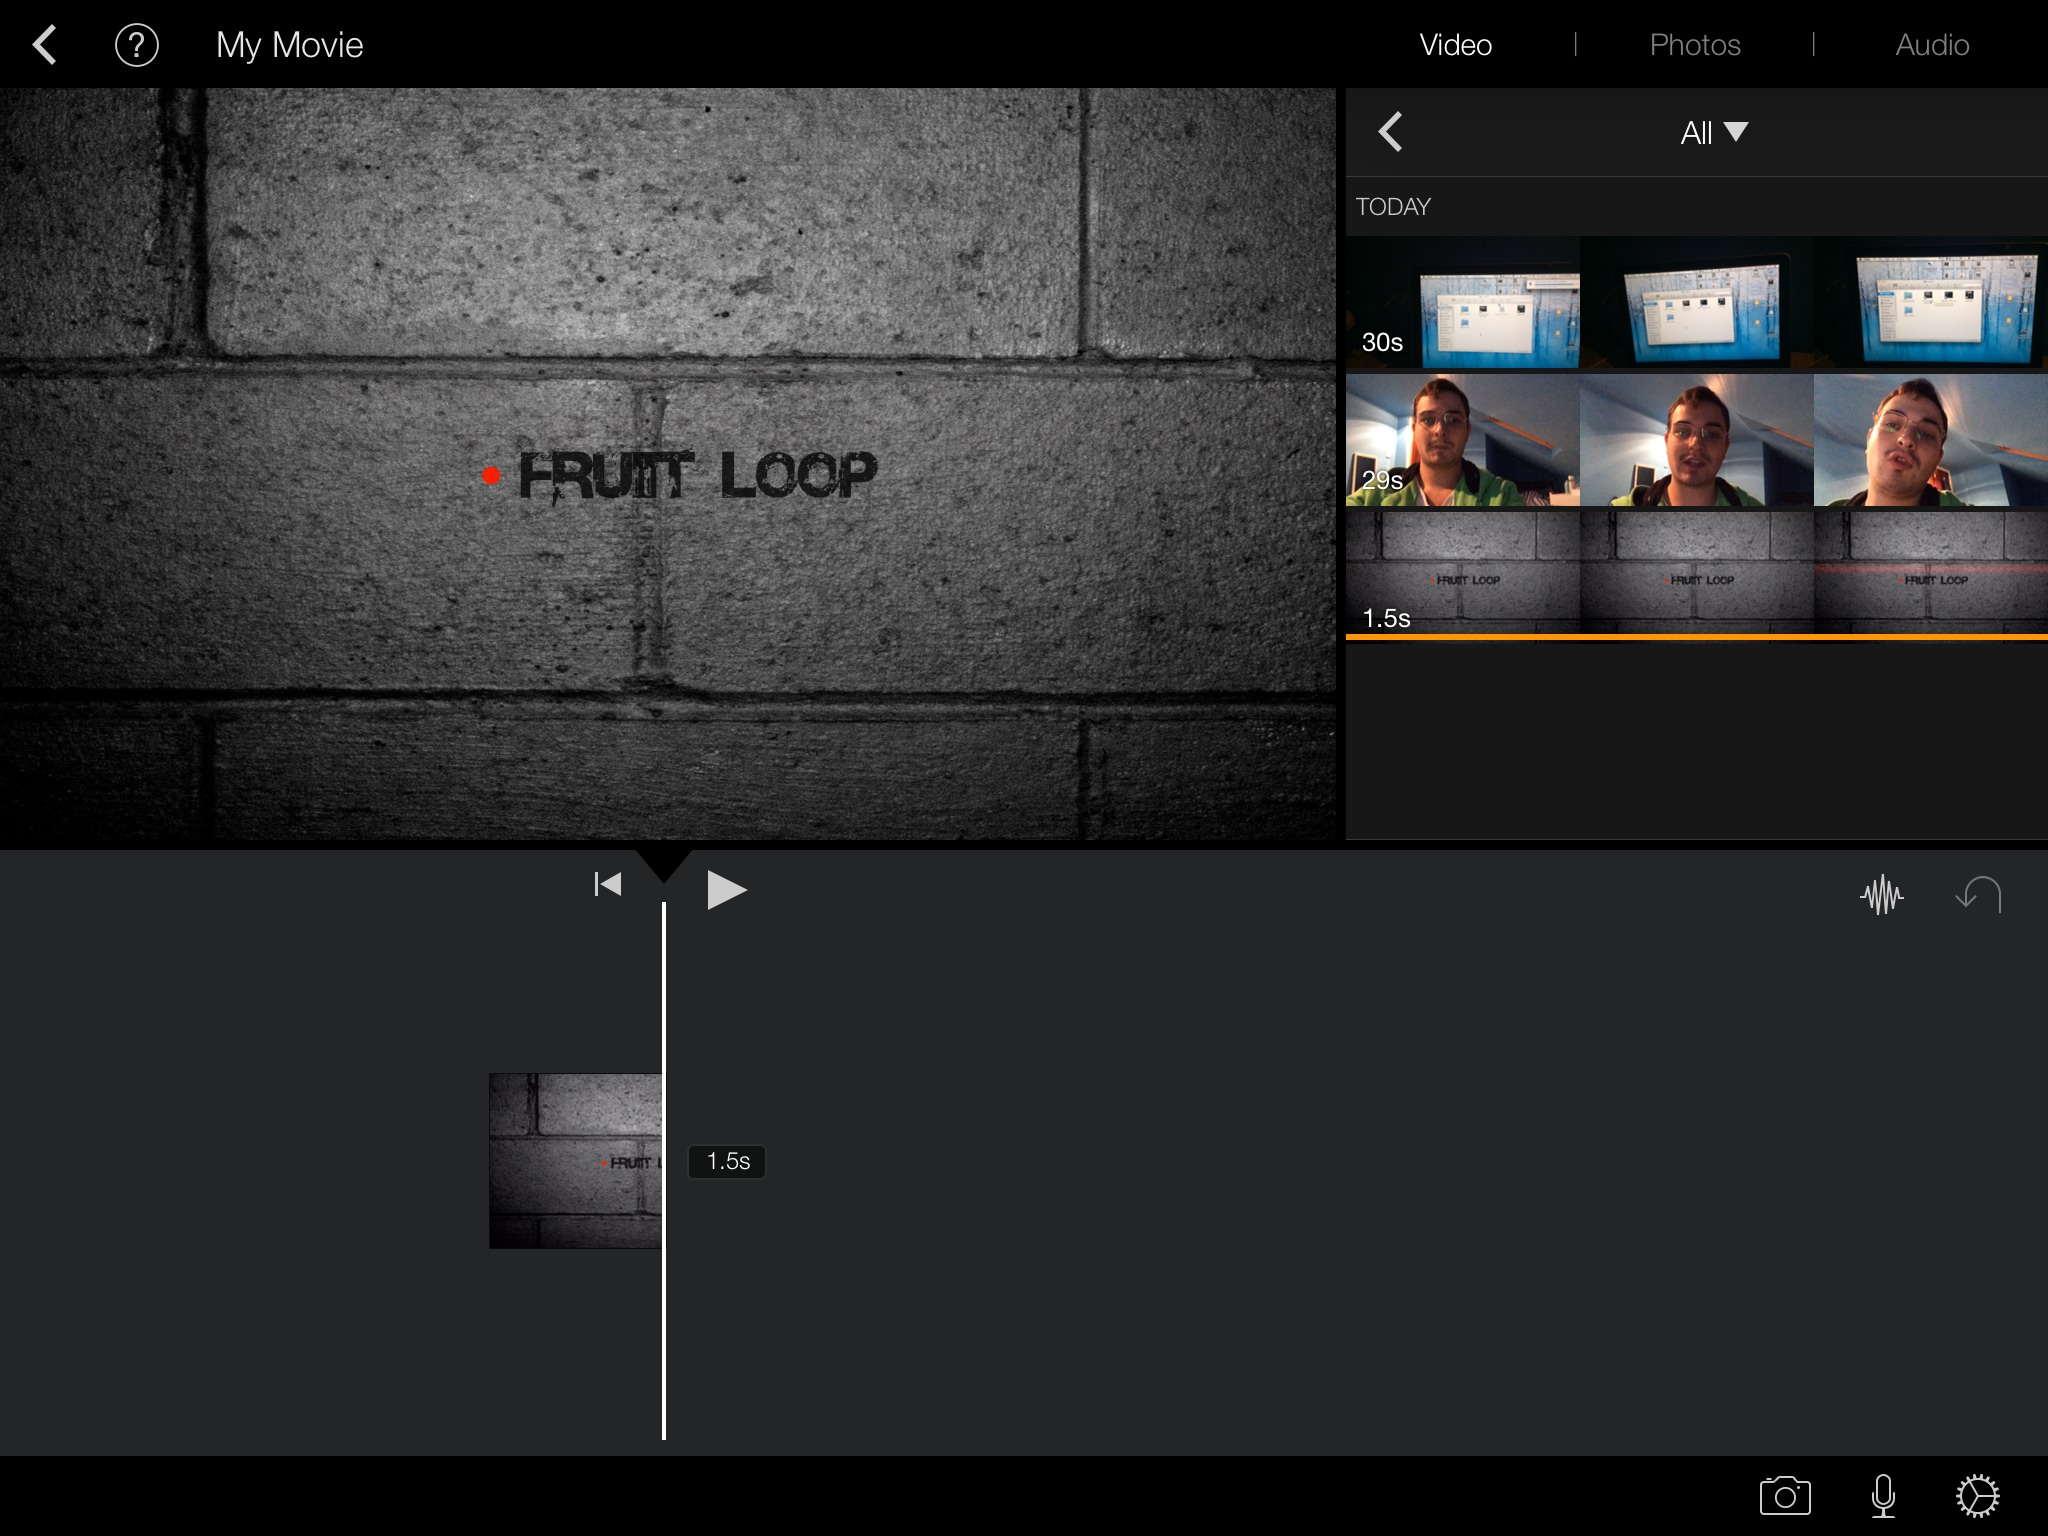 How to import youtube videos into imovie on ipad